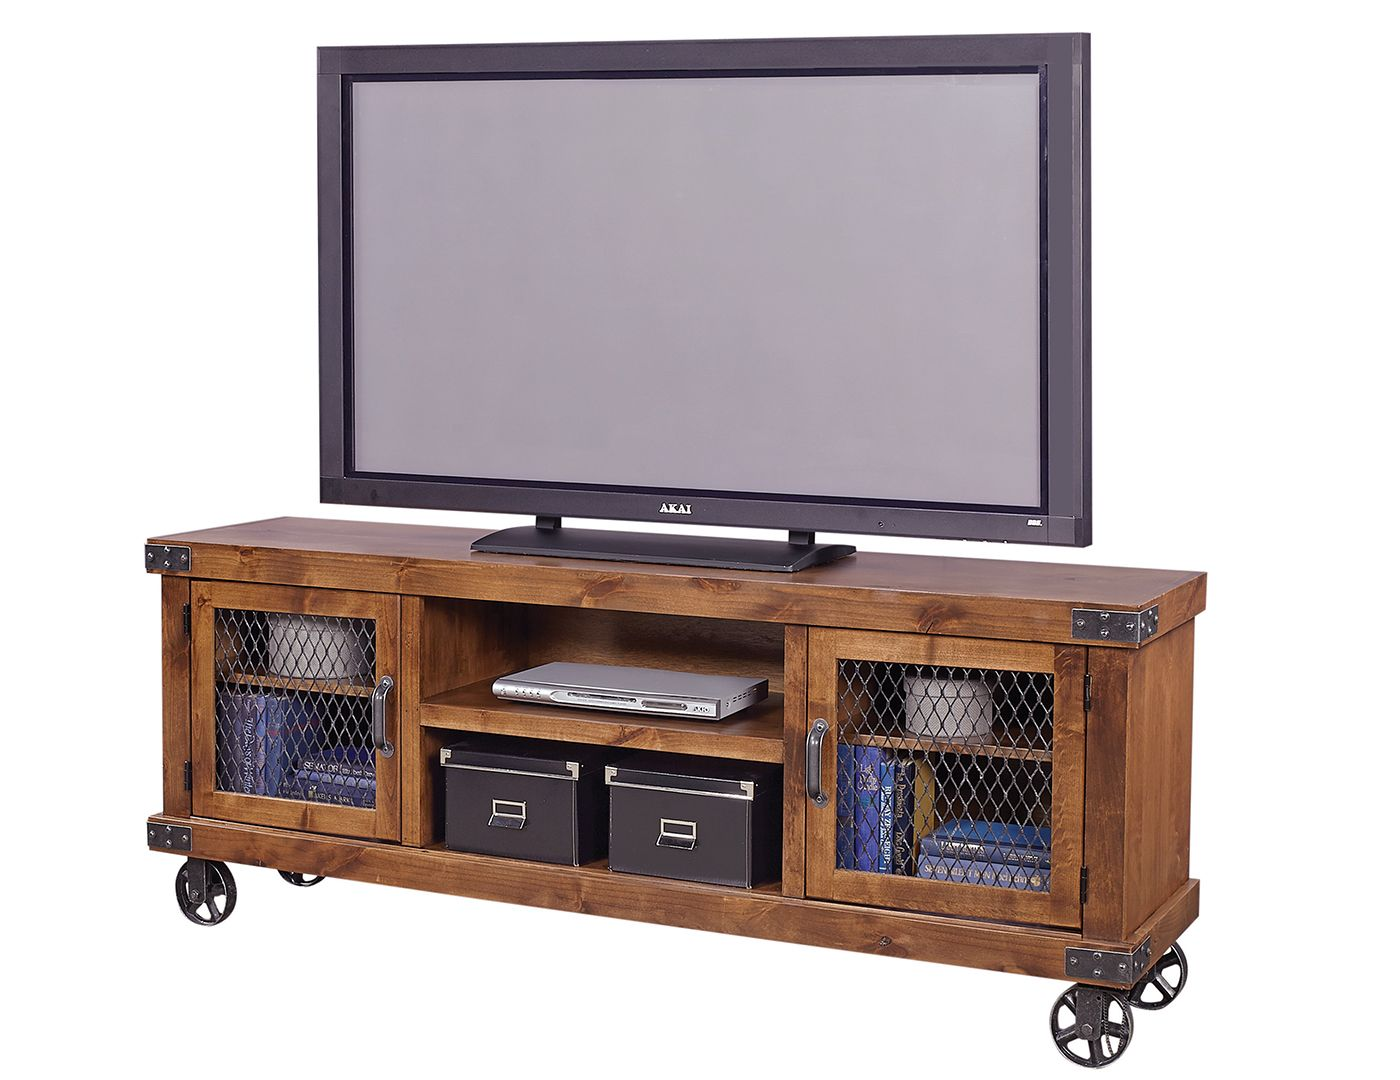 Shop For Aspenhome Industrial Console, And Other Living Room TV Stands At  Kittleu0027s Furniture In Indiana. Crafted Of Knotty Alder Veneers And Solids  With ...